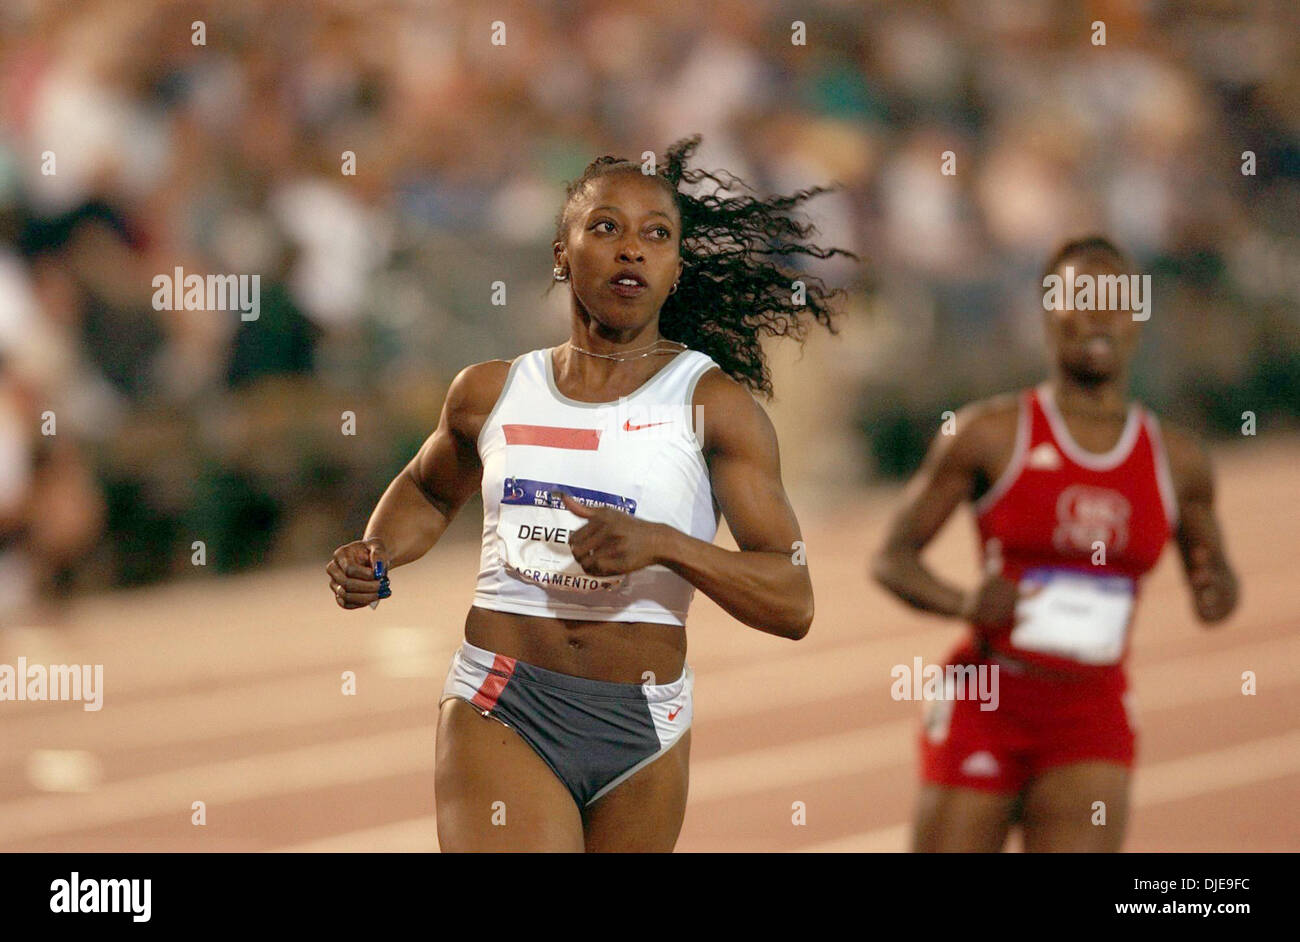 Jul 09, 2004; Sacramento, CA, USA; GAIL DEVERS crosses the finish line in the 100 meter dash and qualified fifth on day one of the 2004 U.S. Track and Field Trials at Hornet Stadium. - Stock Image